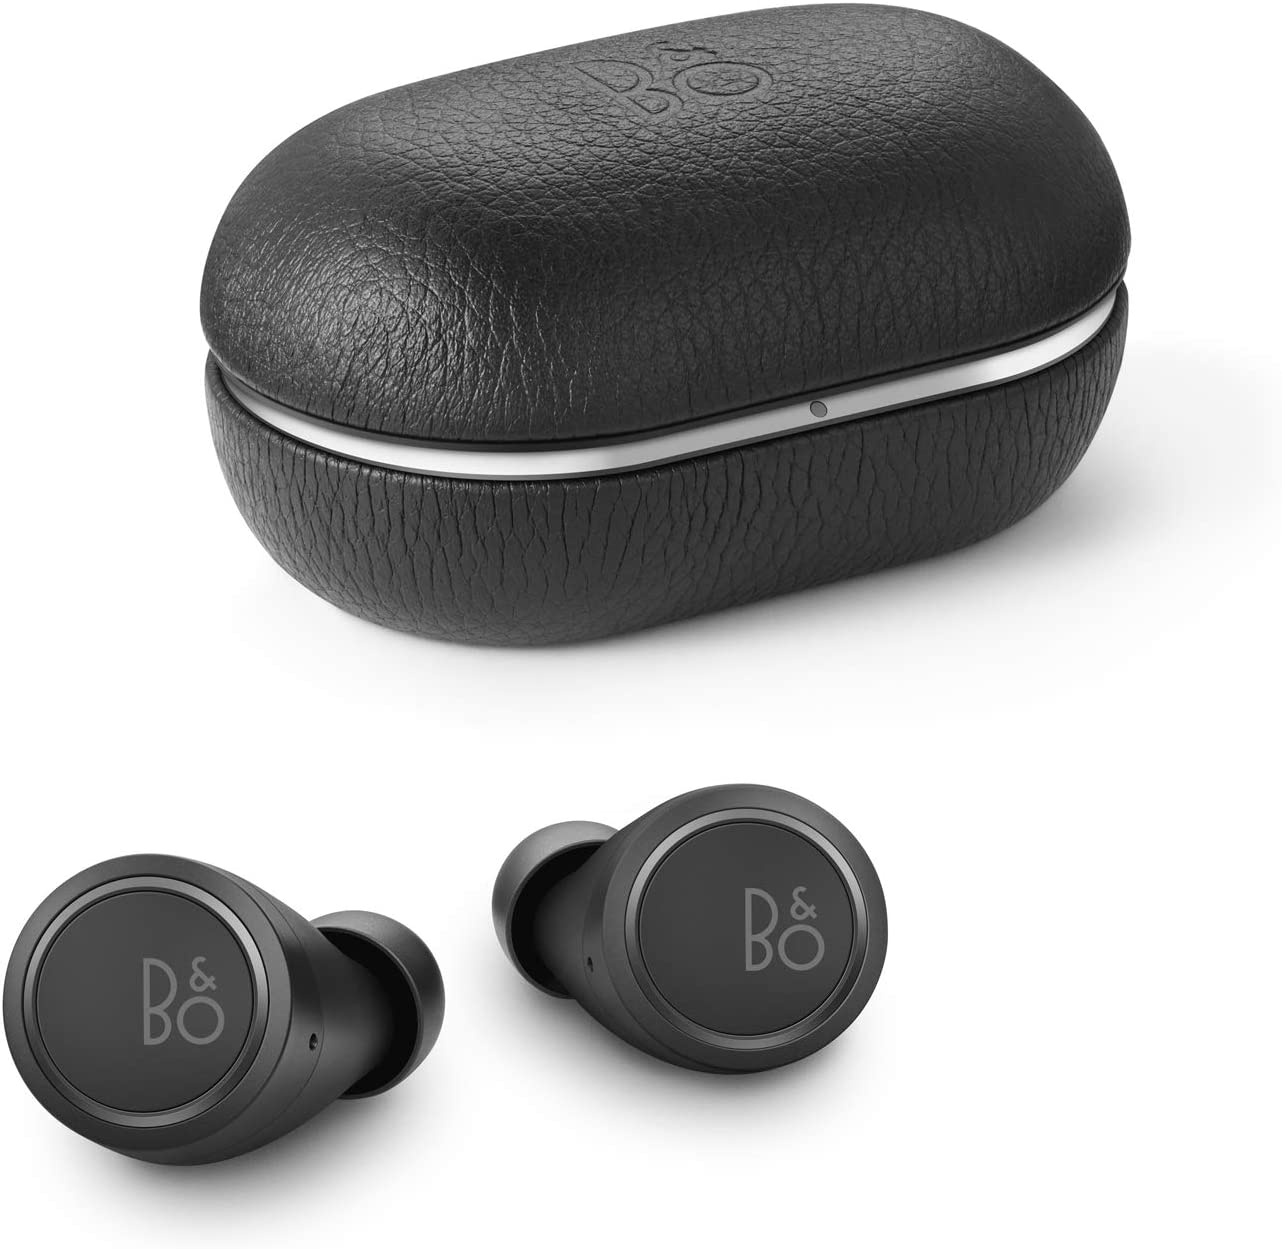 Bang und Olufsen Beoplay E8 Earbuds